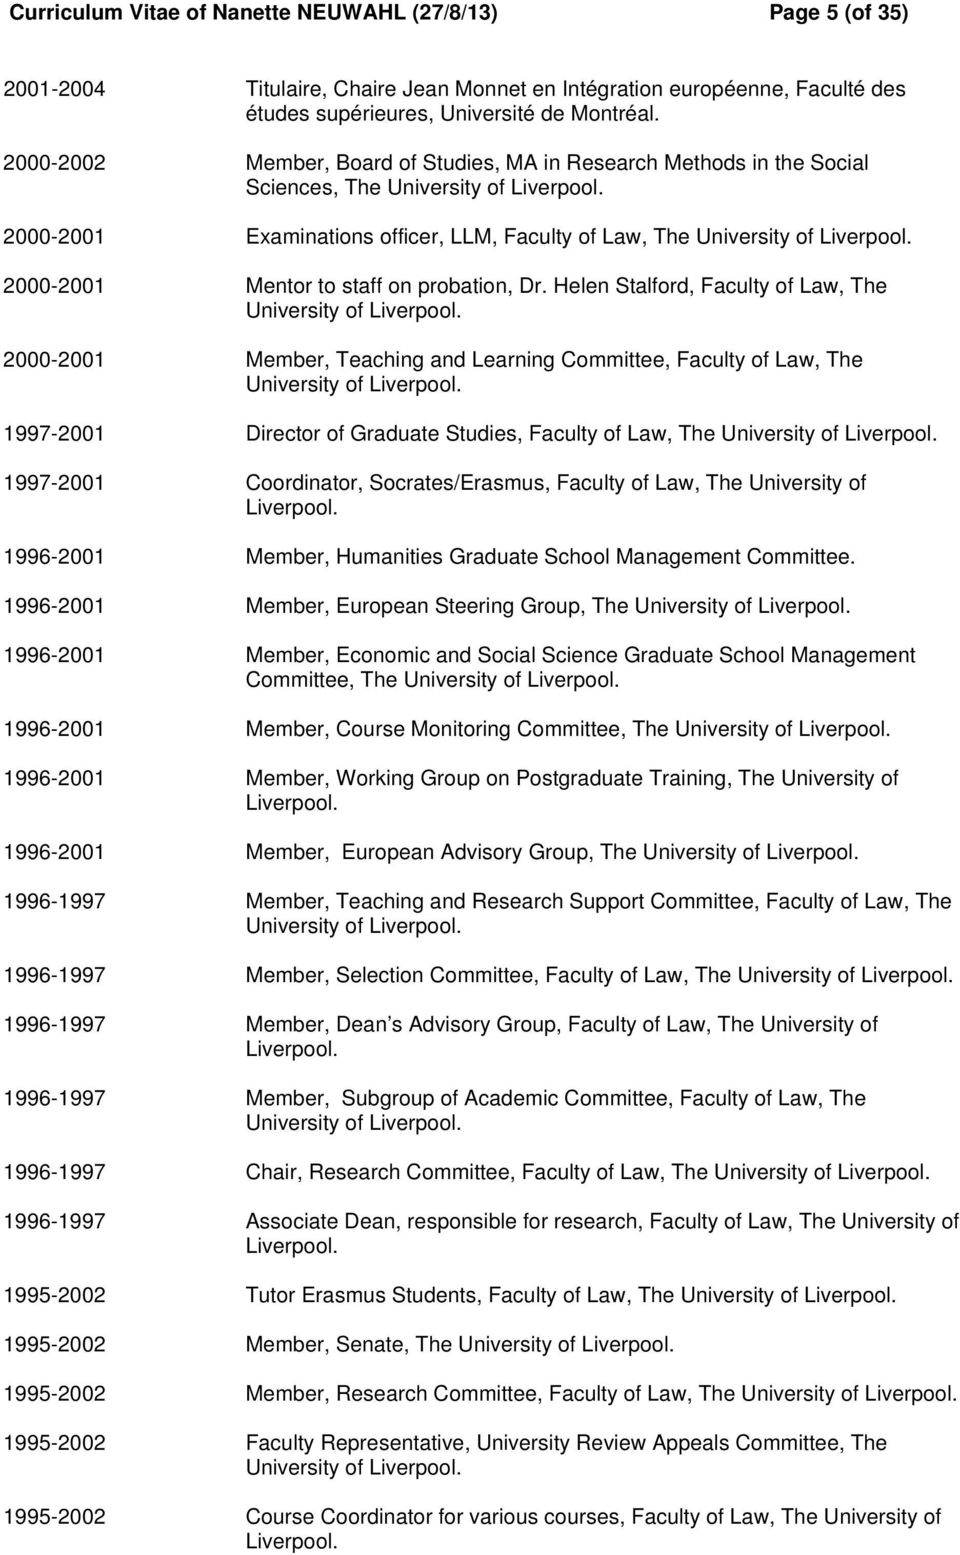 2000-2001 Mentor to staff on probation, Dr. Helen Stalford, Faculty of Law, The University of Liverpool. 2000-2001 Member, Teaching and Learning Committee, Faculty of Law, The University of Liverpool.